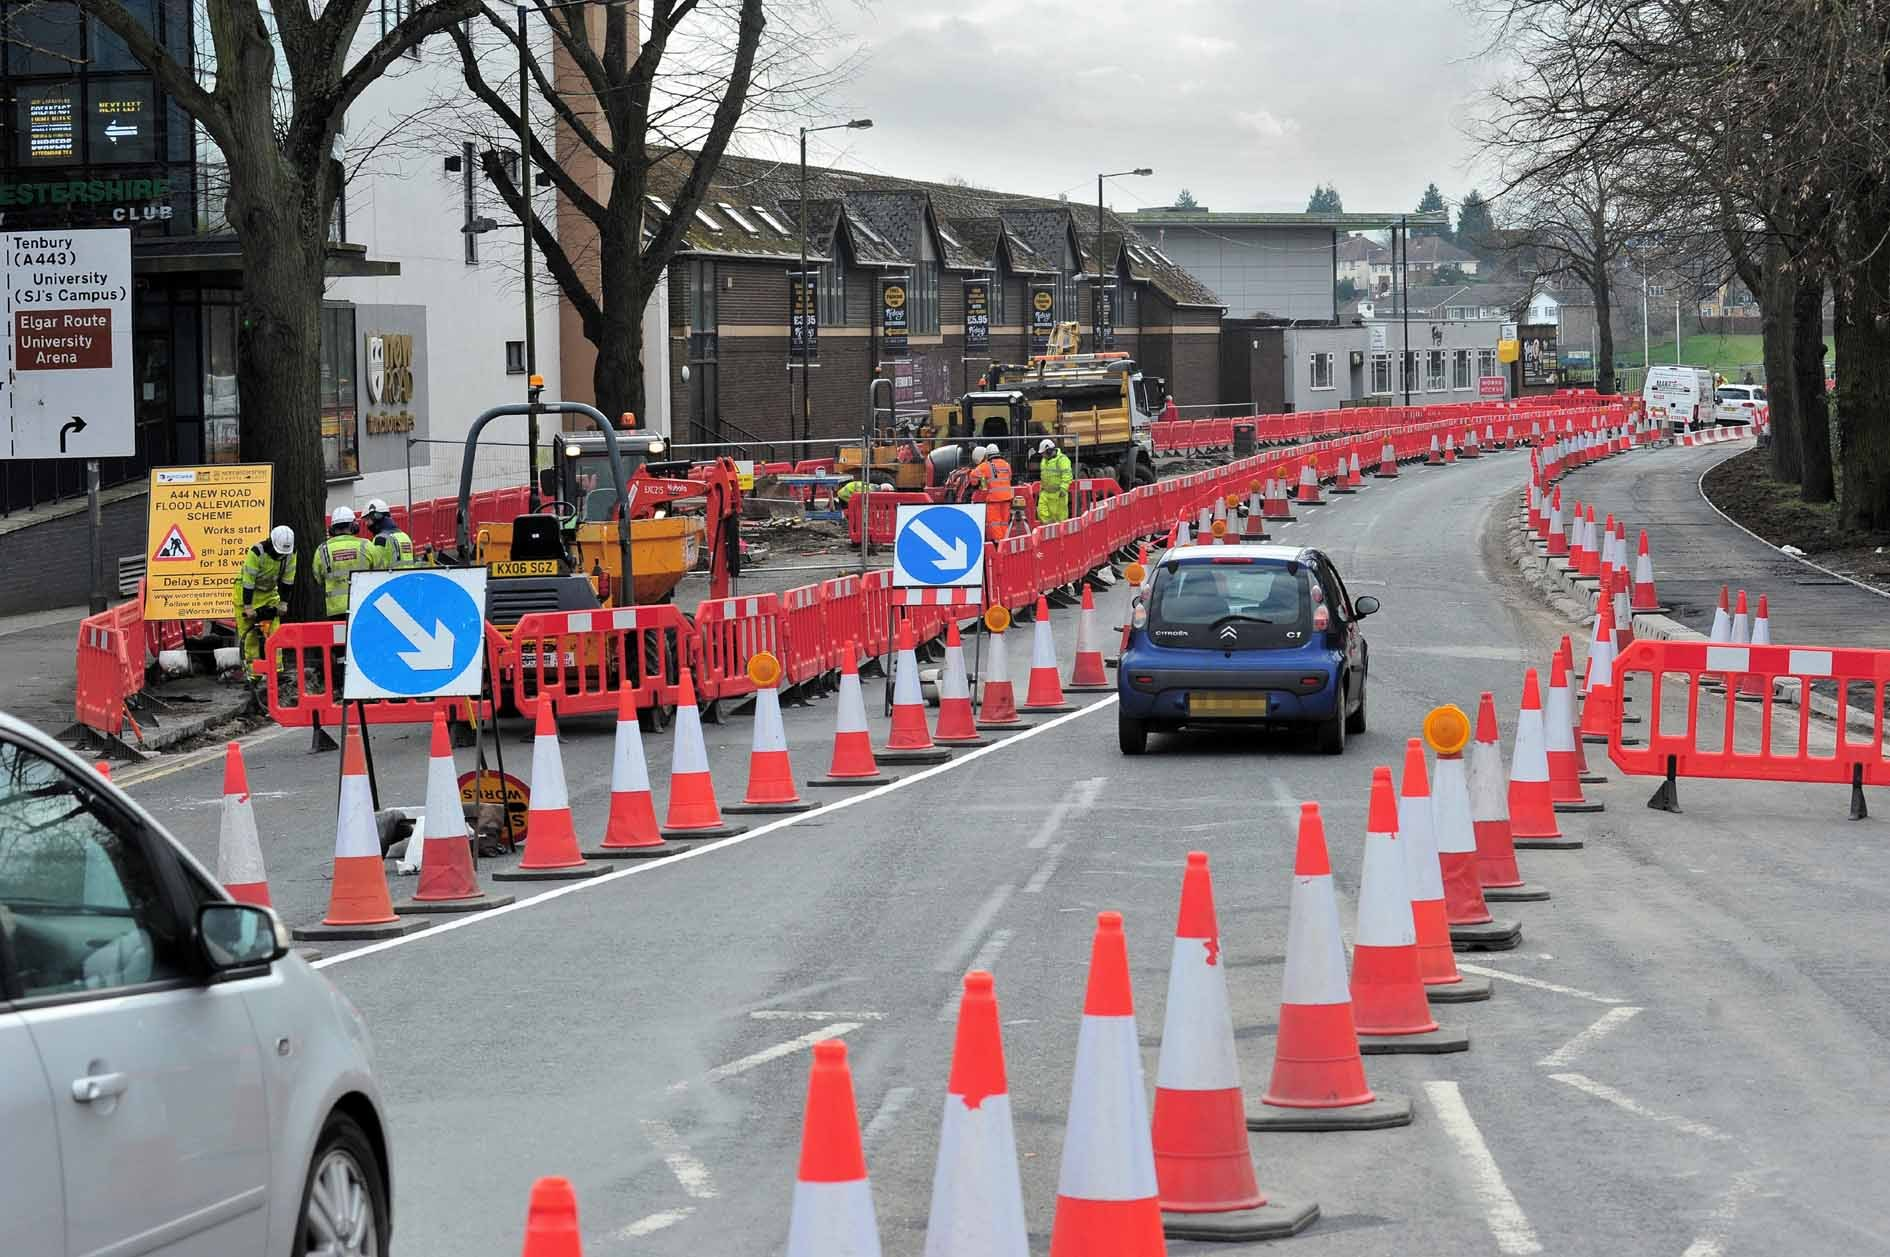 DELAYS: Queues expected on  routes through the city as flood prevention work closes New Road for the weekend.